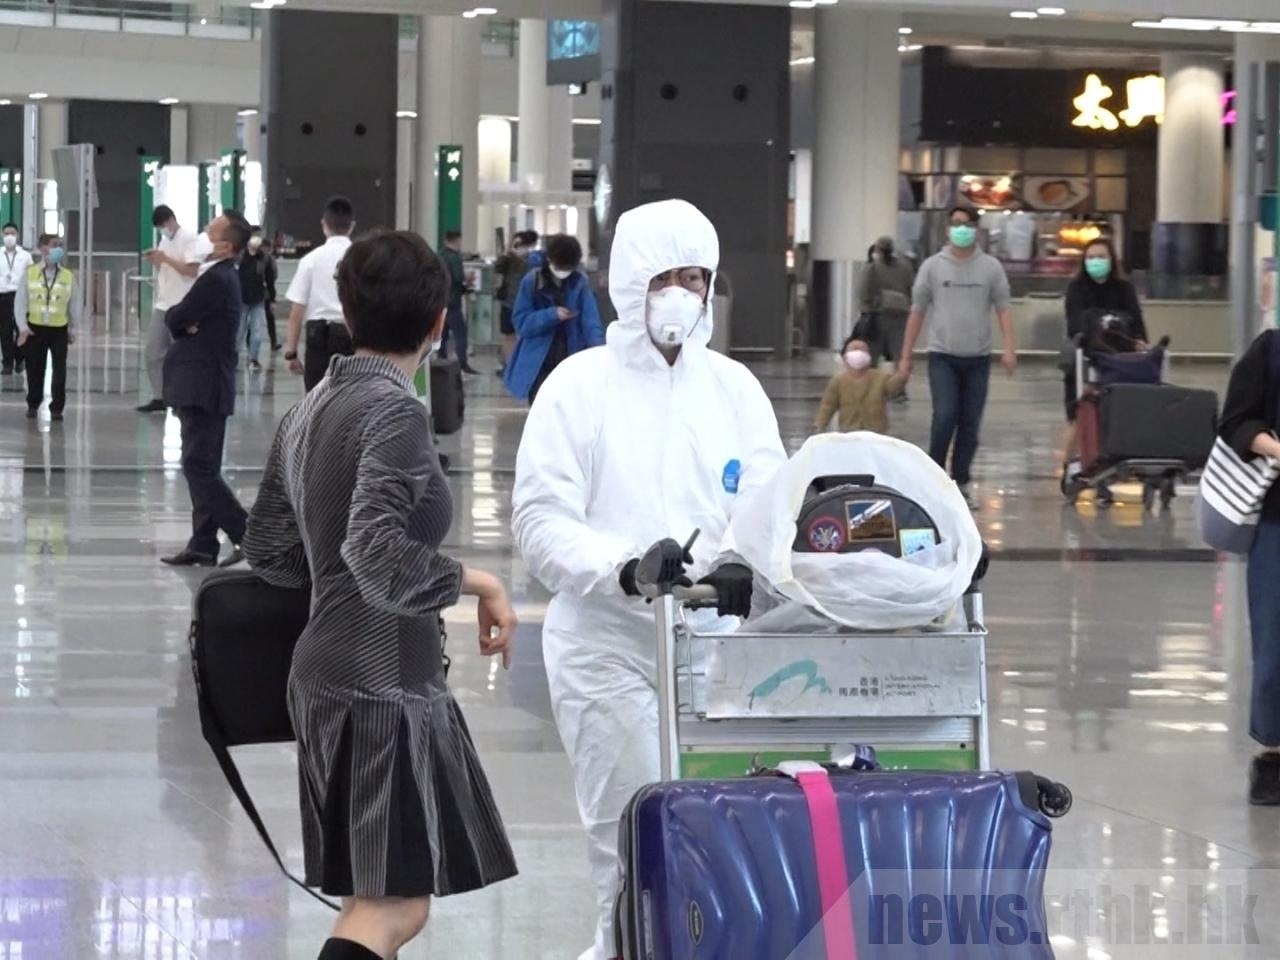 Experts recommend testing antibodies of travellers